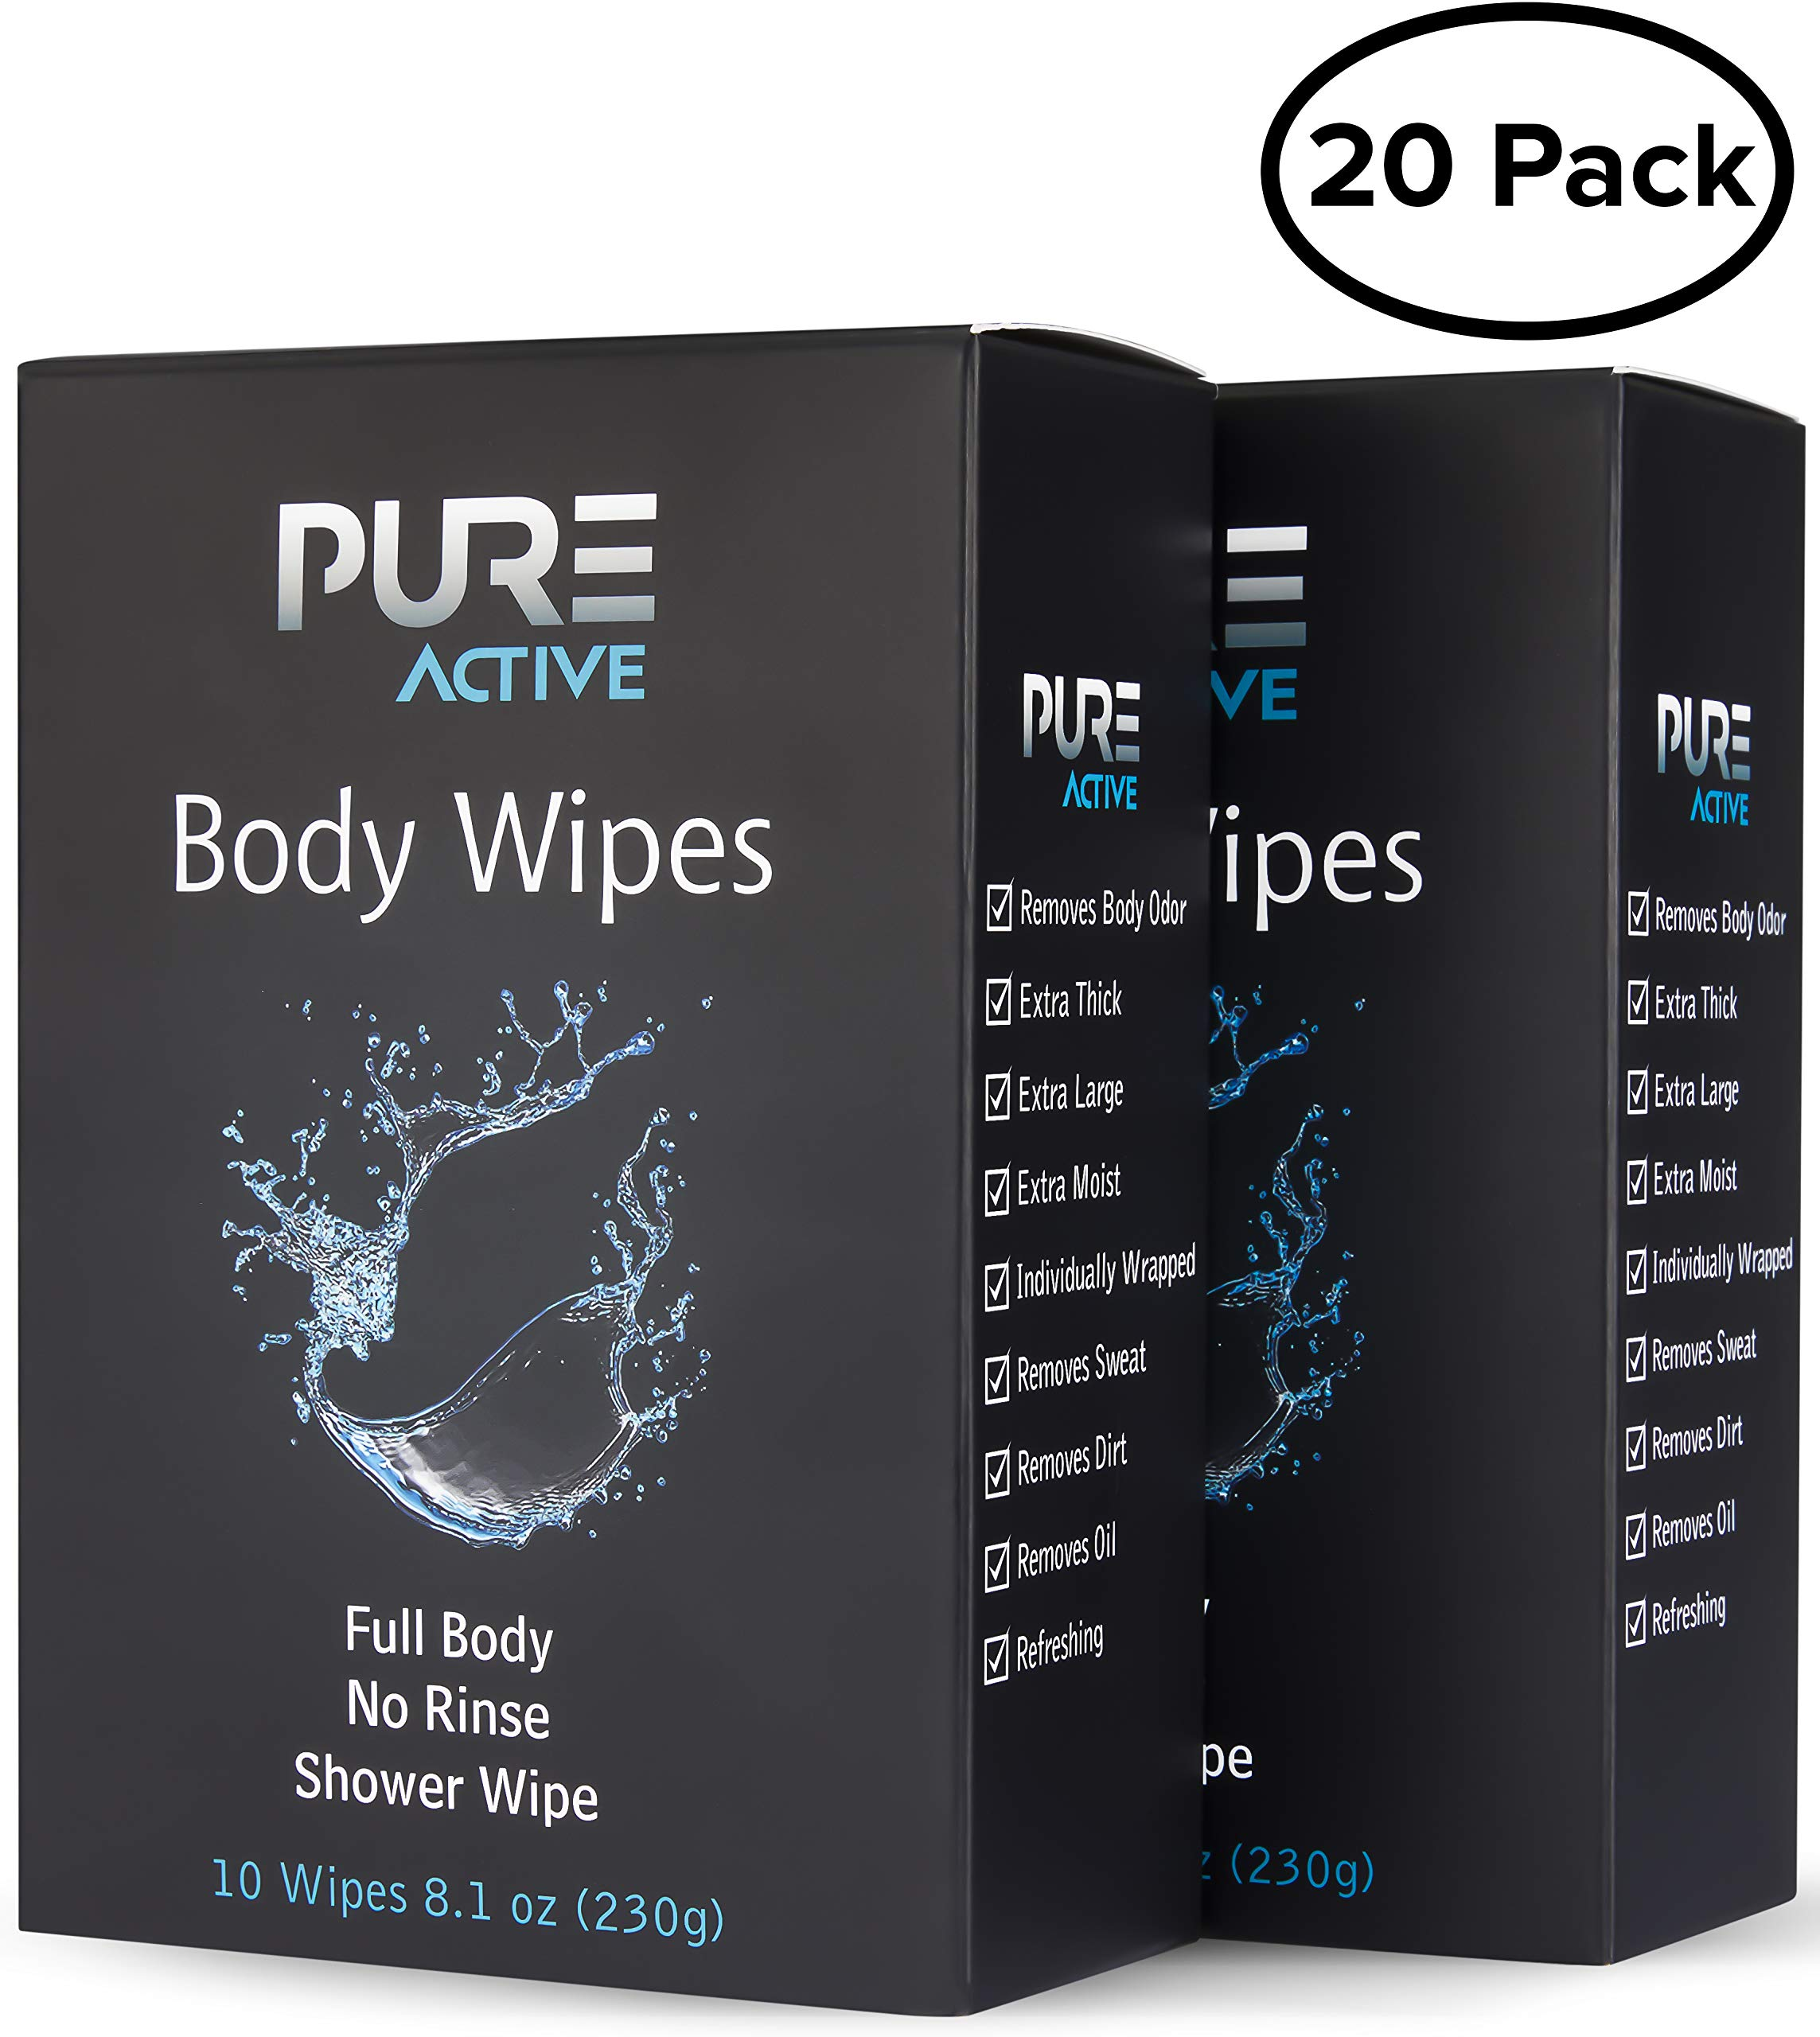 Shower Body Cleansing Wipes - New Pure Active 20 Individually Wrapped Personal Hygiene Wipes. 2 Pack x10 Extra Large Perfect Solution to Keep Clean After Gym Travel Camping Outdoors Sports Survival by Pure Active